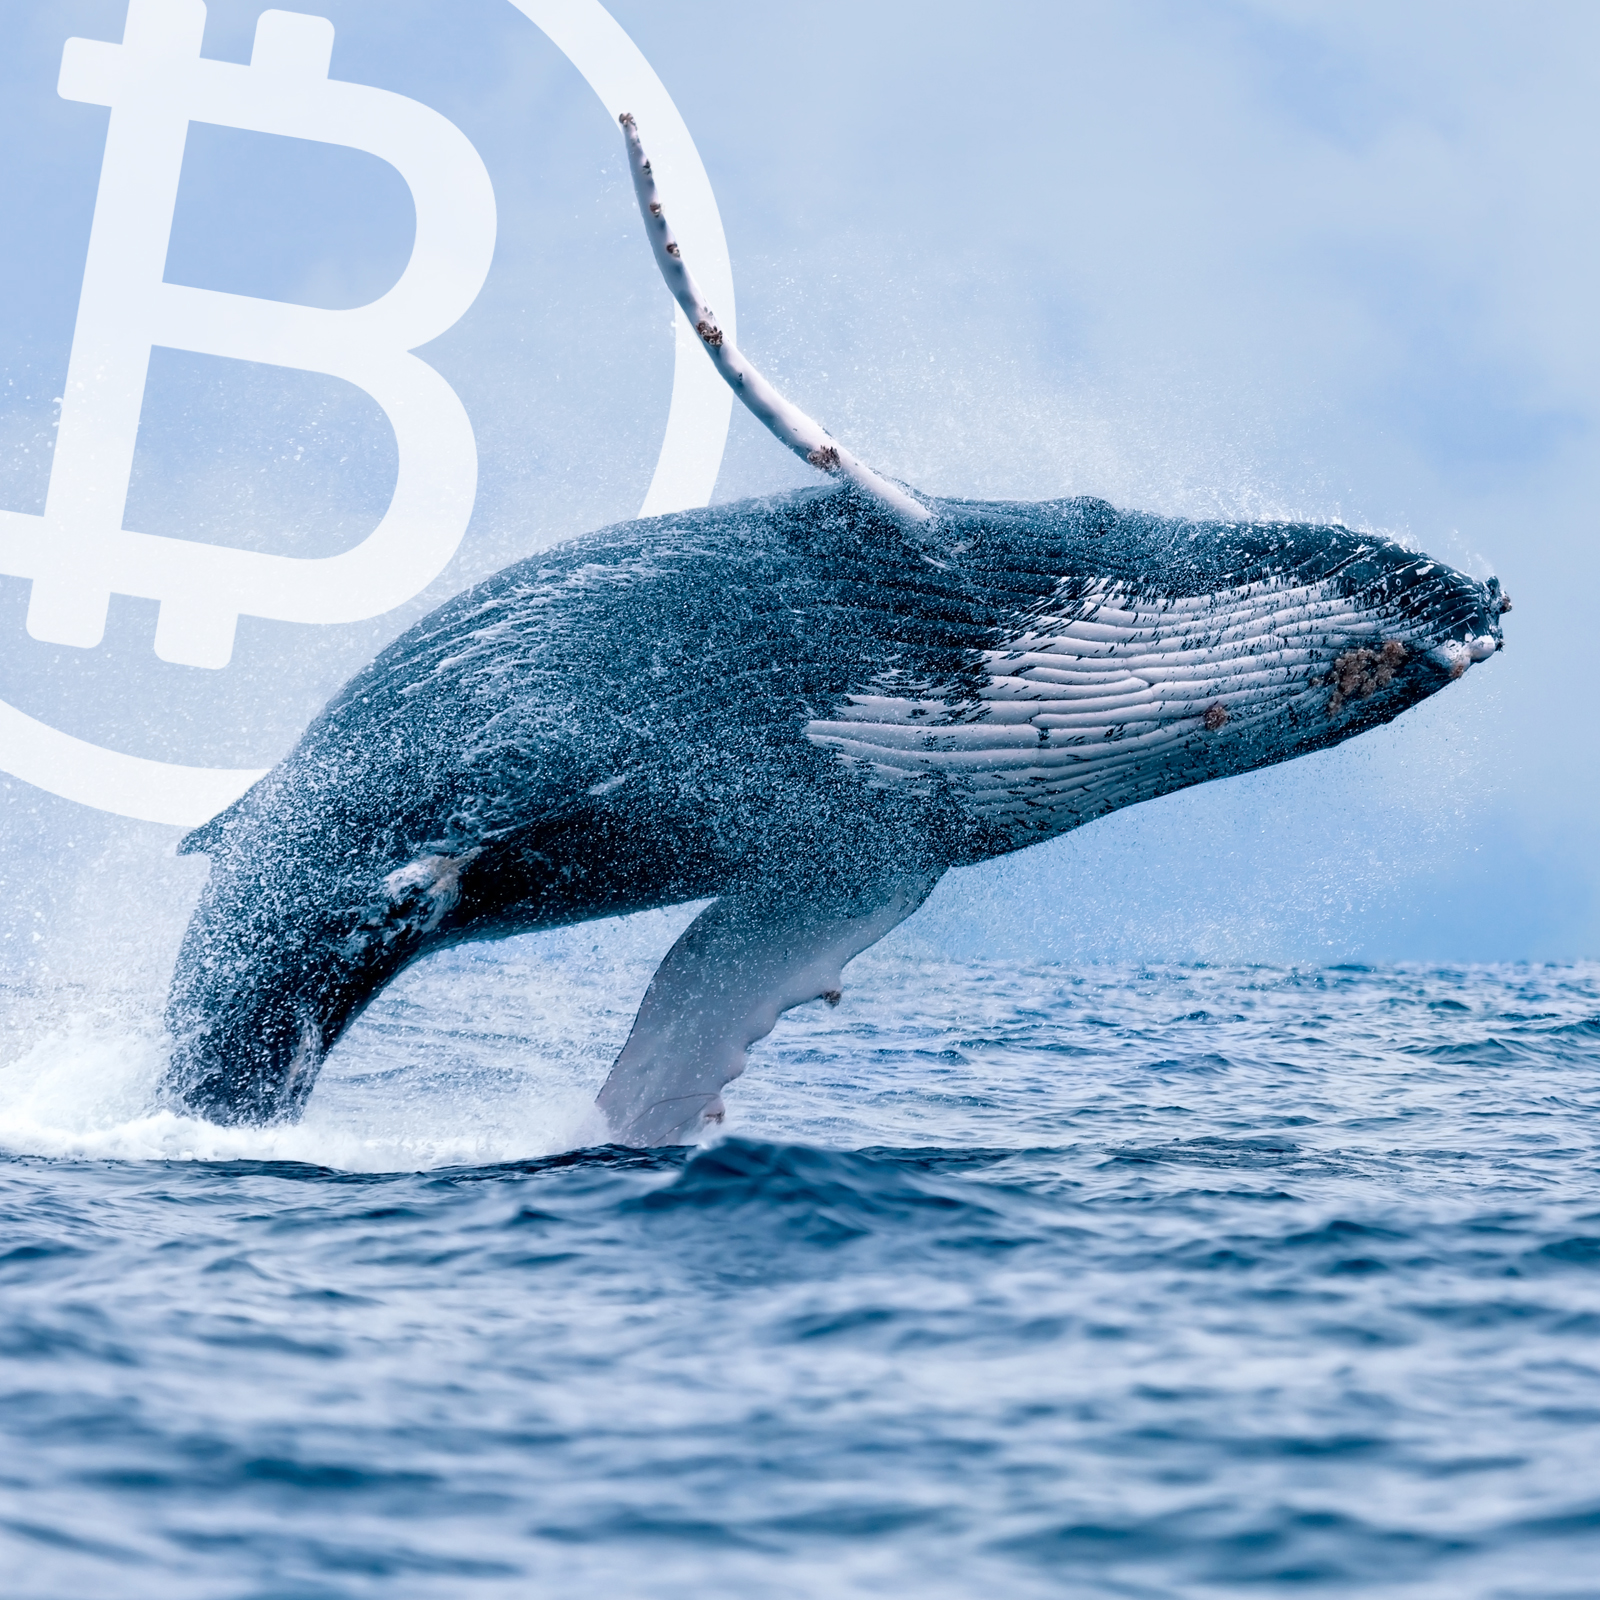 Bitcoin Whales and the Rise of Crypto-Fueled OTC Desks in 2018